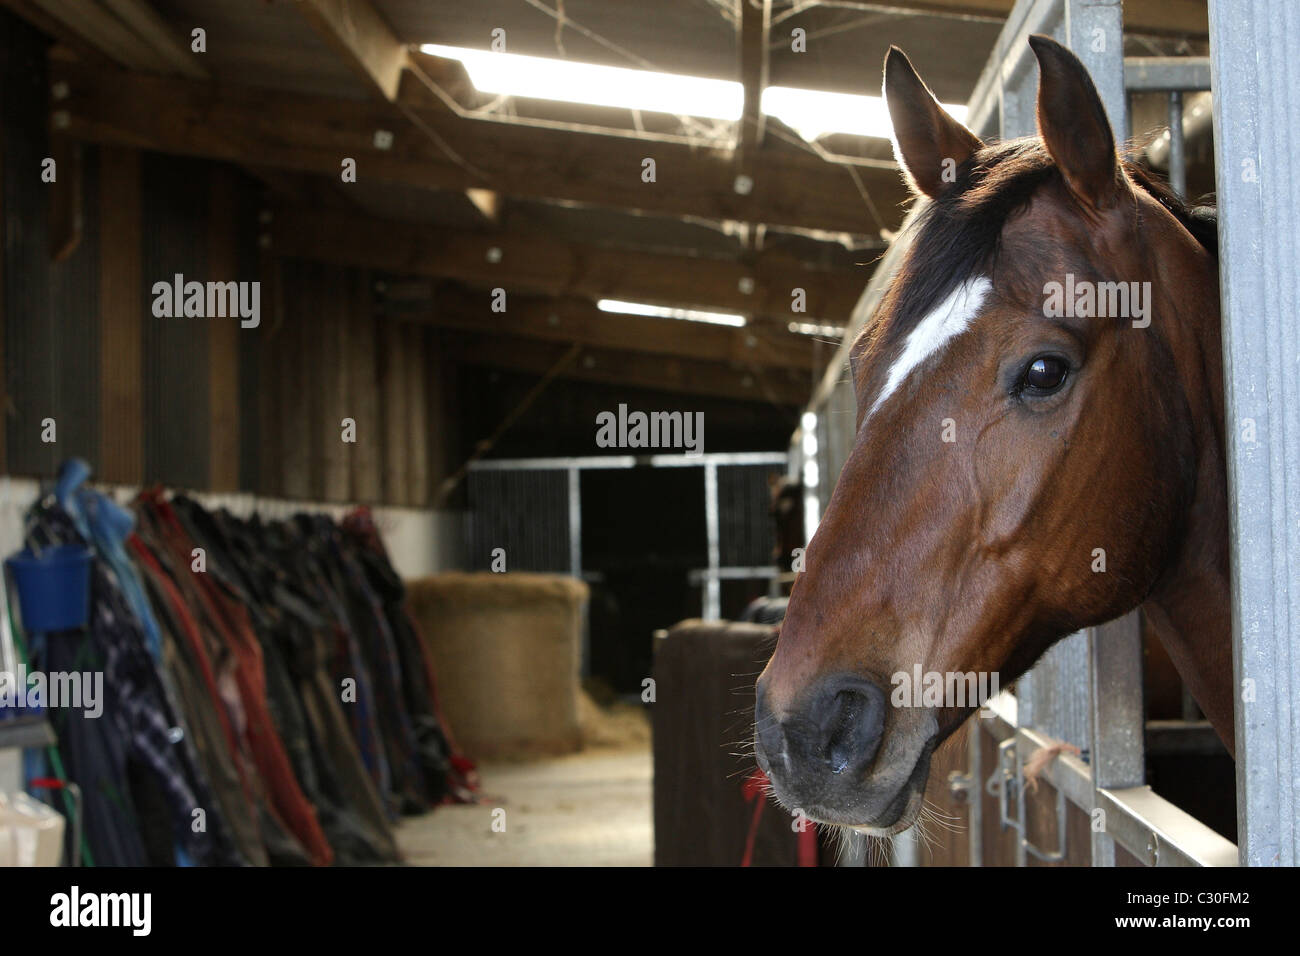 Race Horse in stable at Malzard Riding Stable, Jersey, Channel Islands - Stock Image